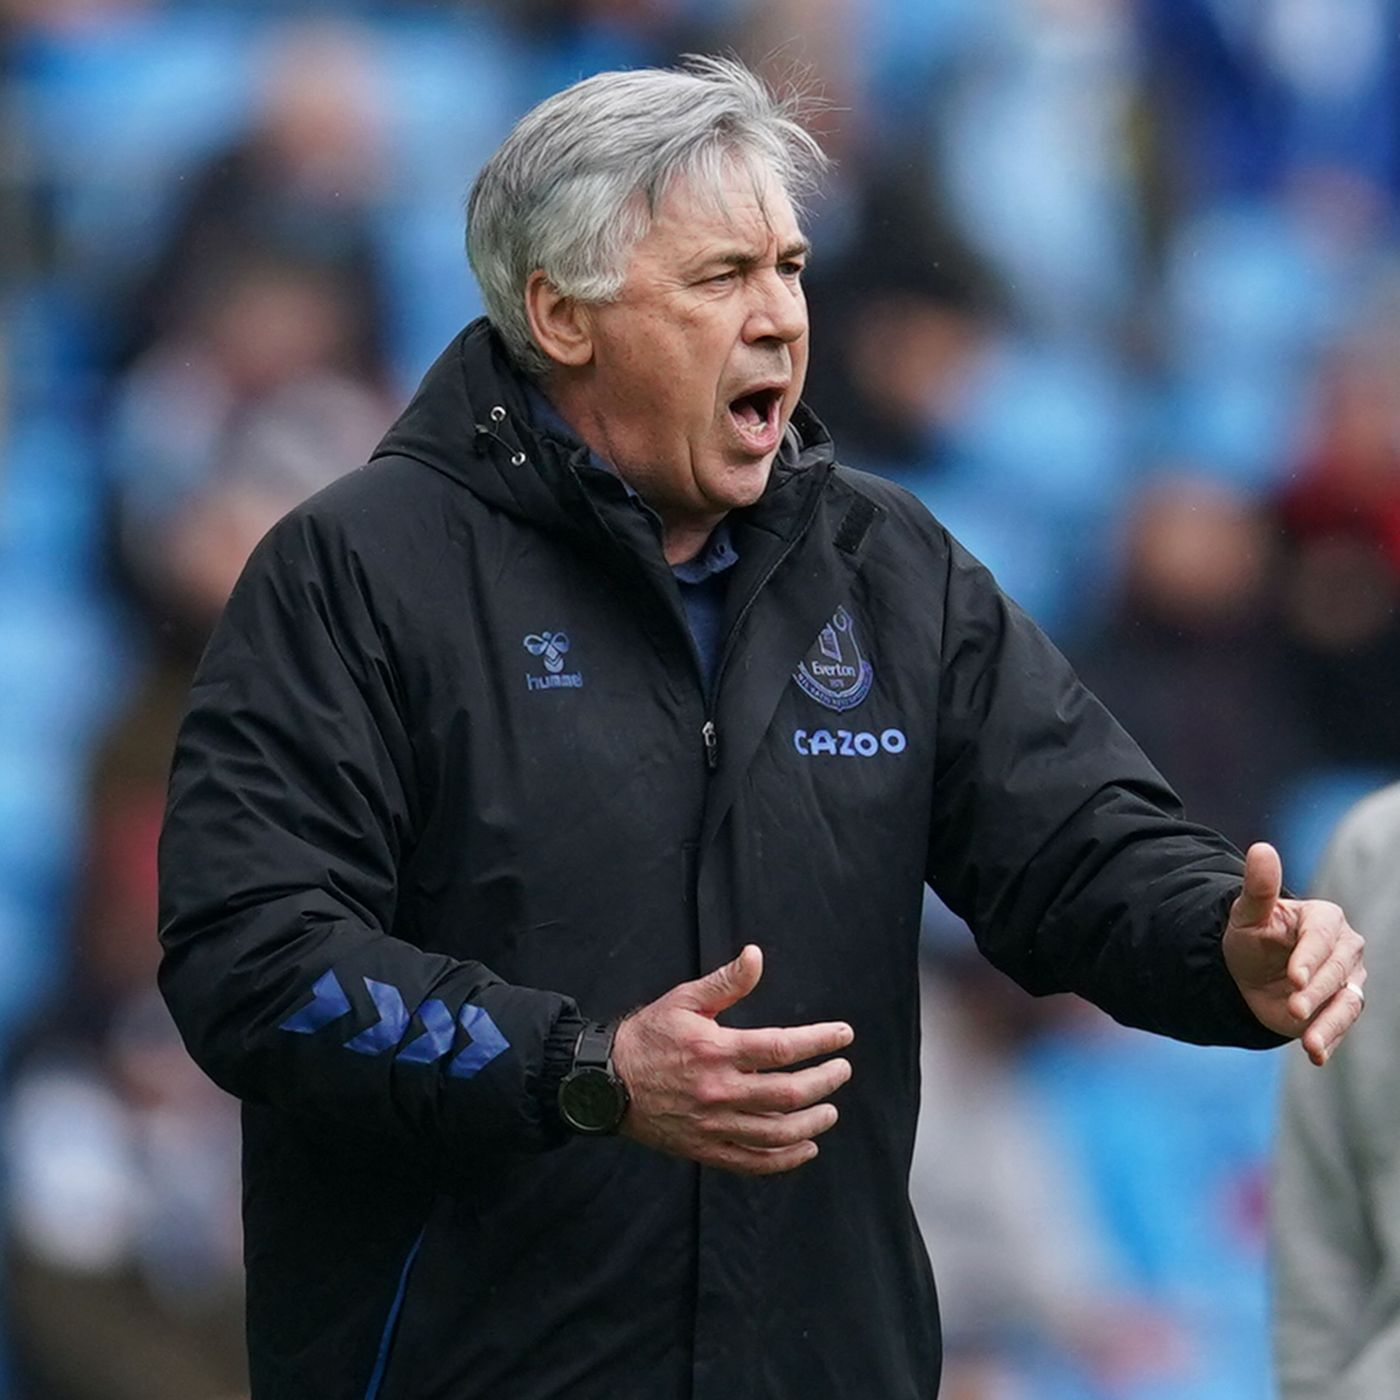 Royal Blue: What comes next for Everton and Carlo Ancelotti after disappointing season end